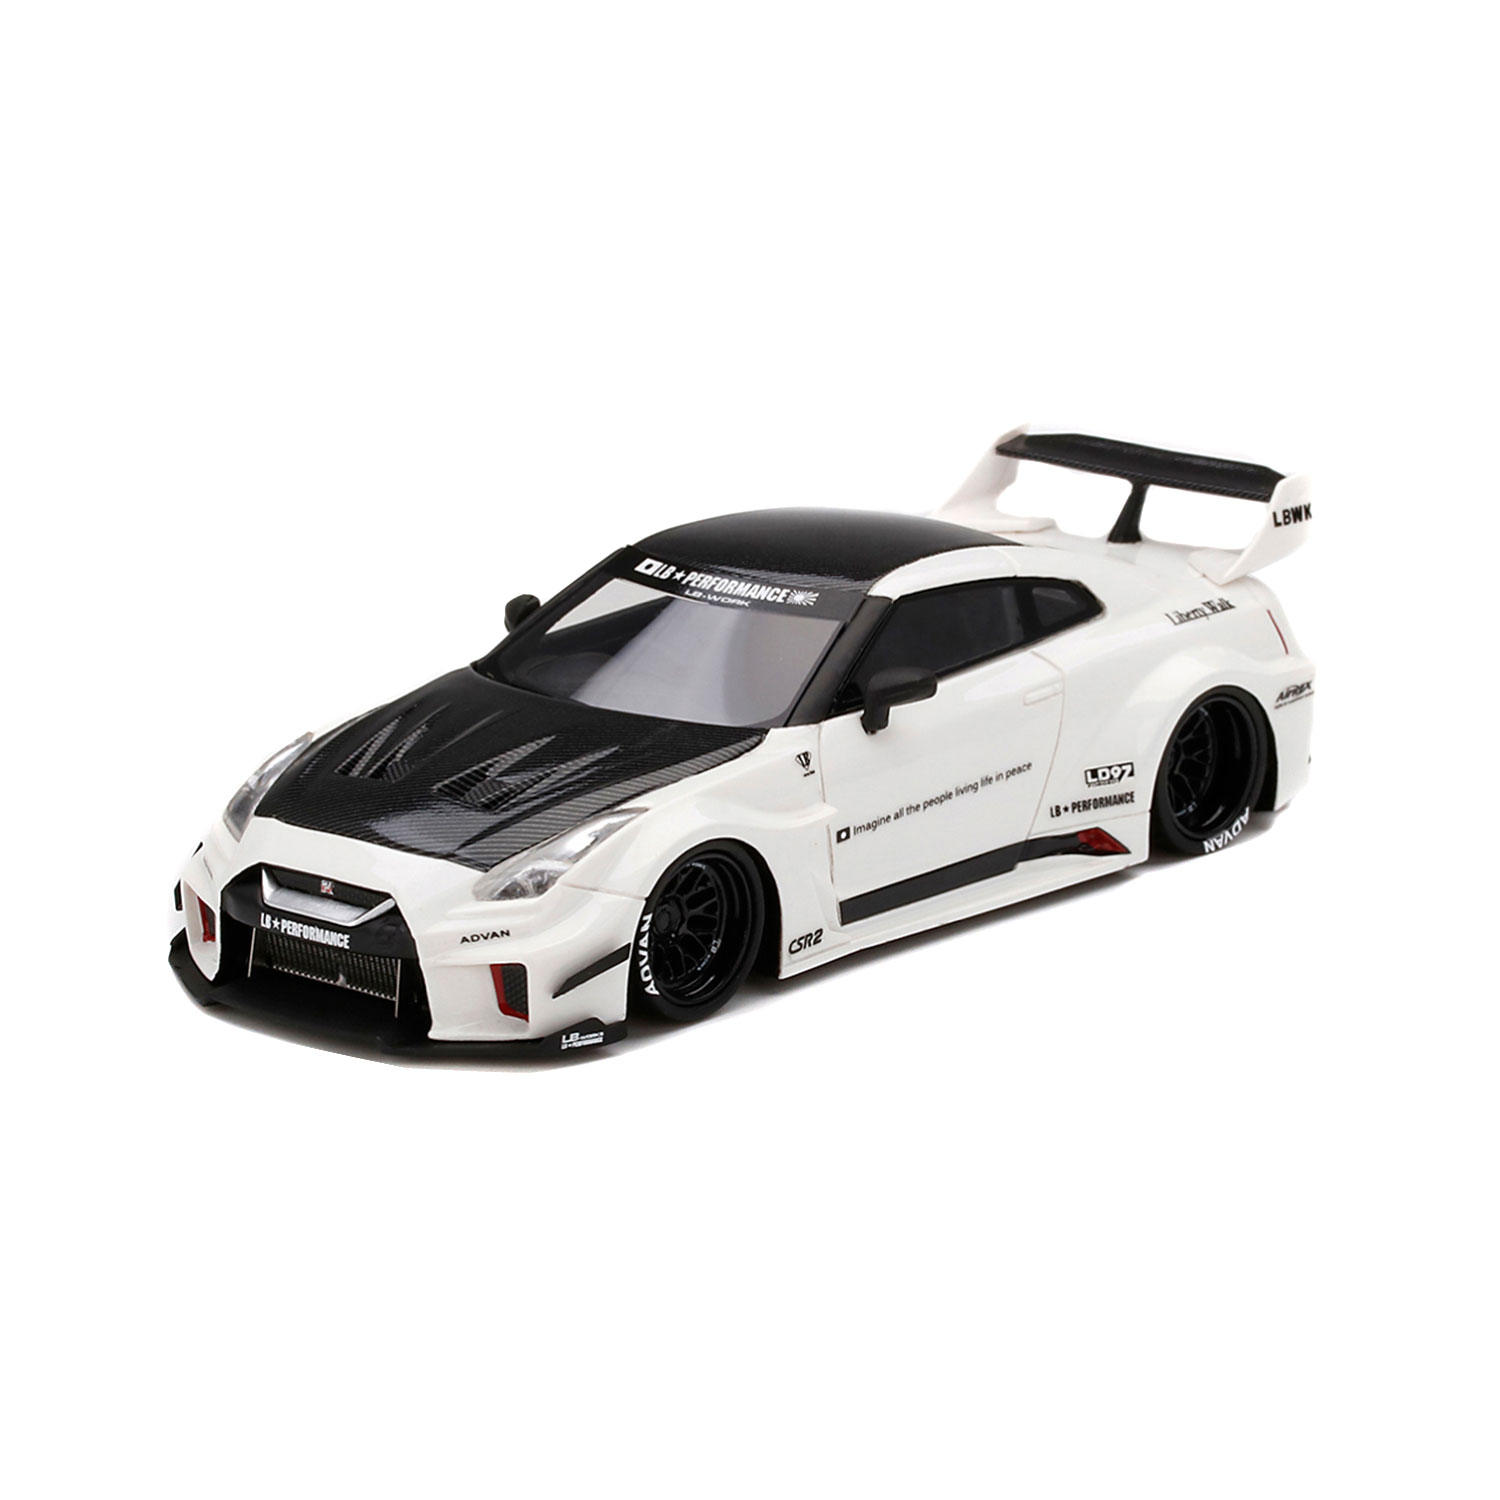 1/43 TSM MODEL LB- SILHOUETTE WORKS 35GT-RR White